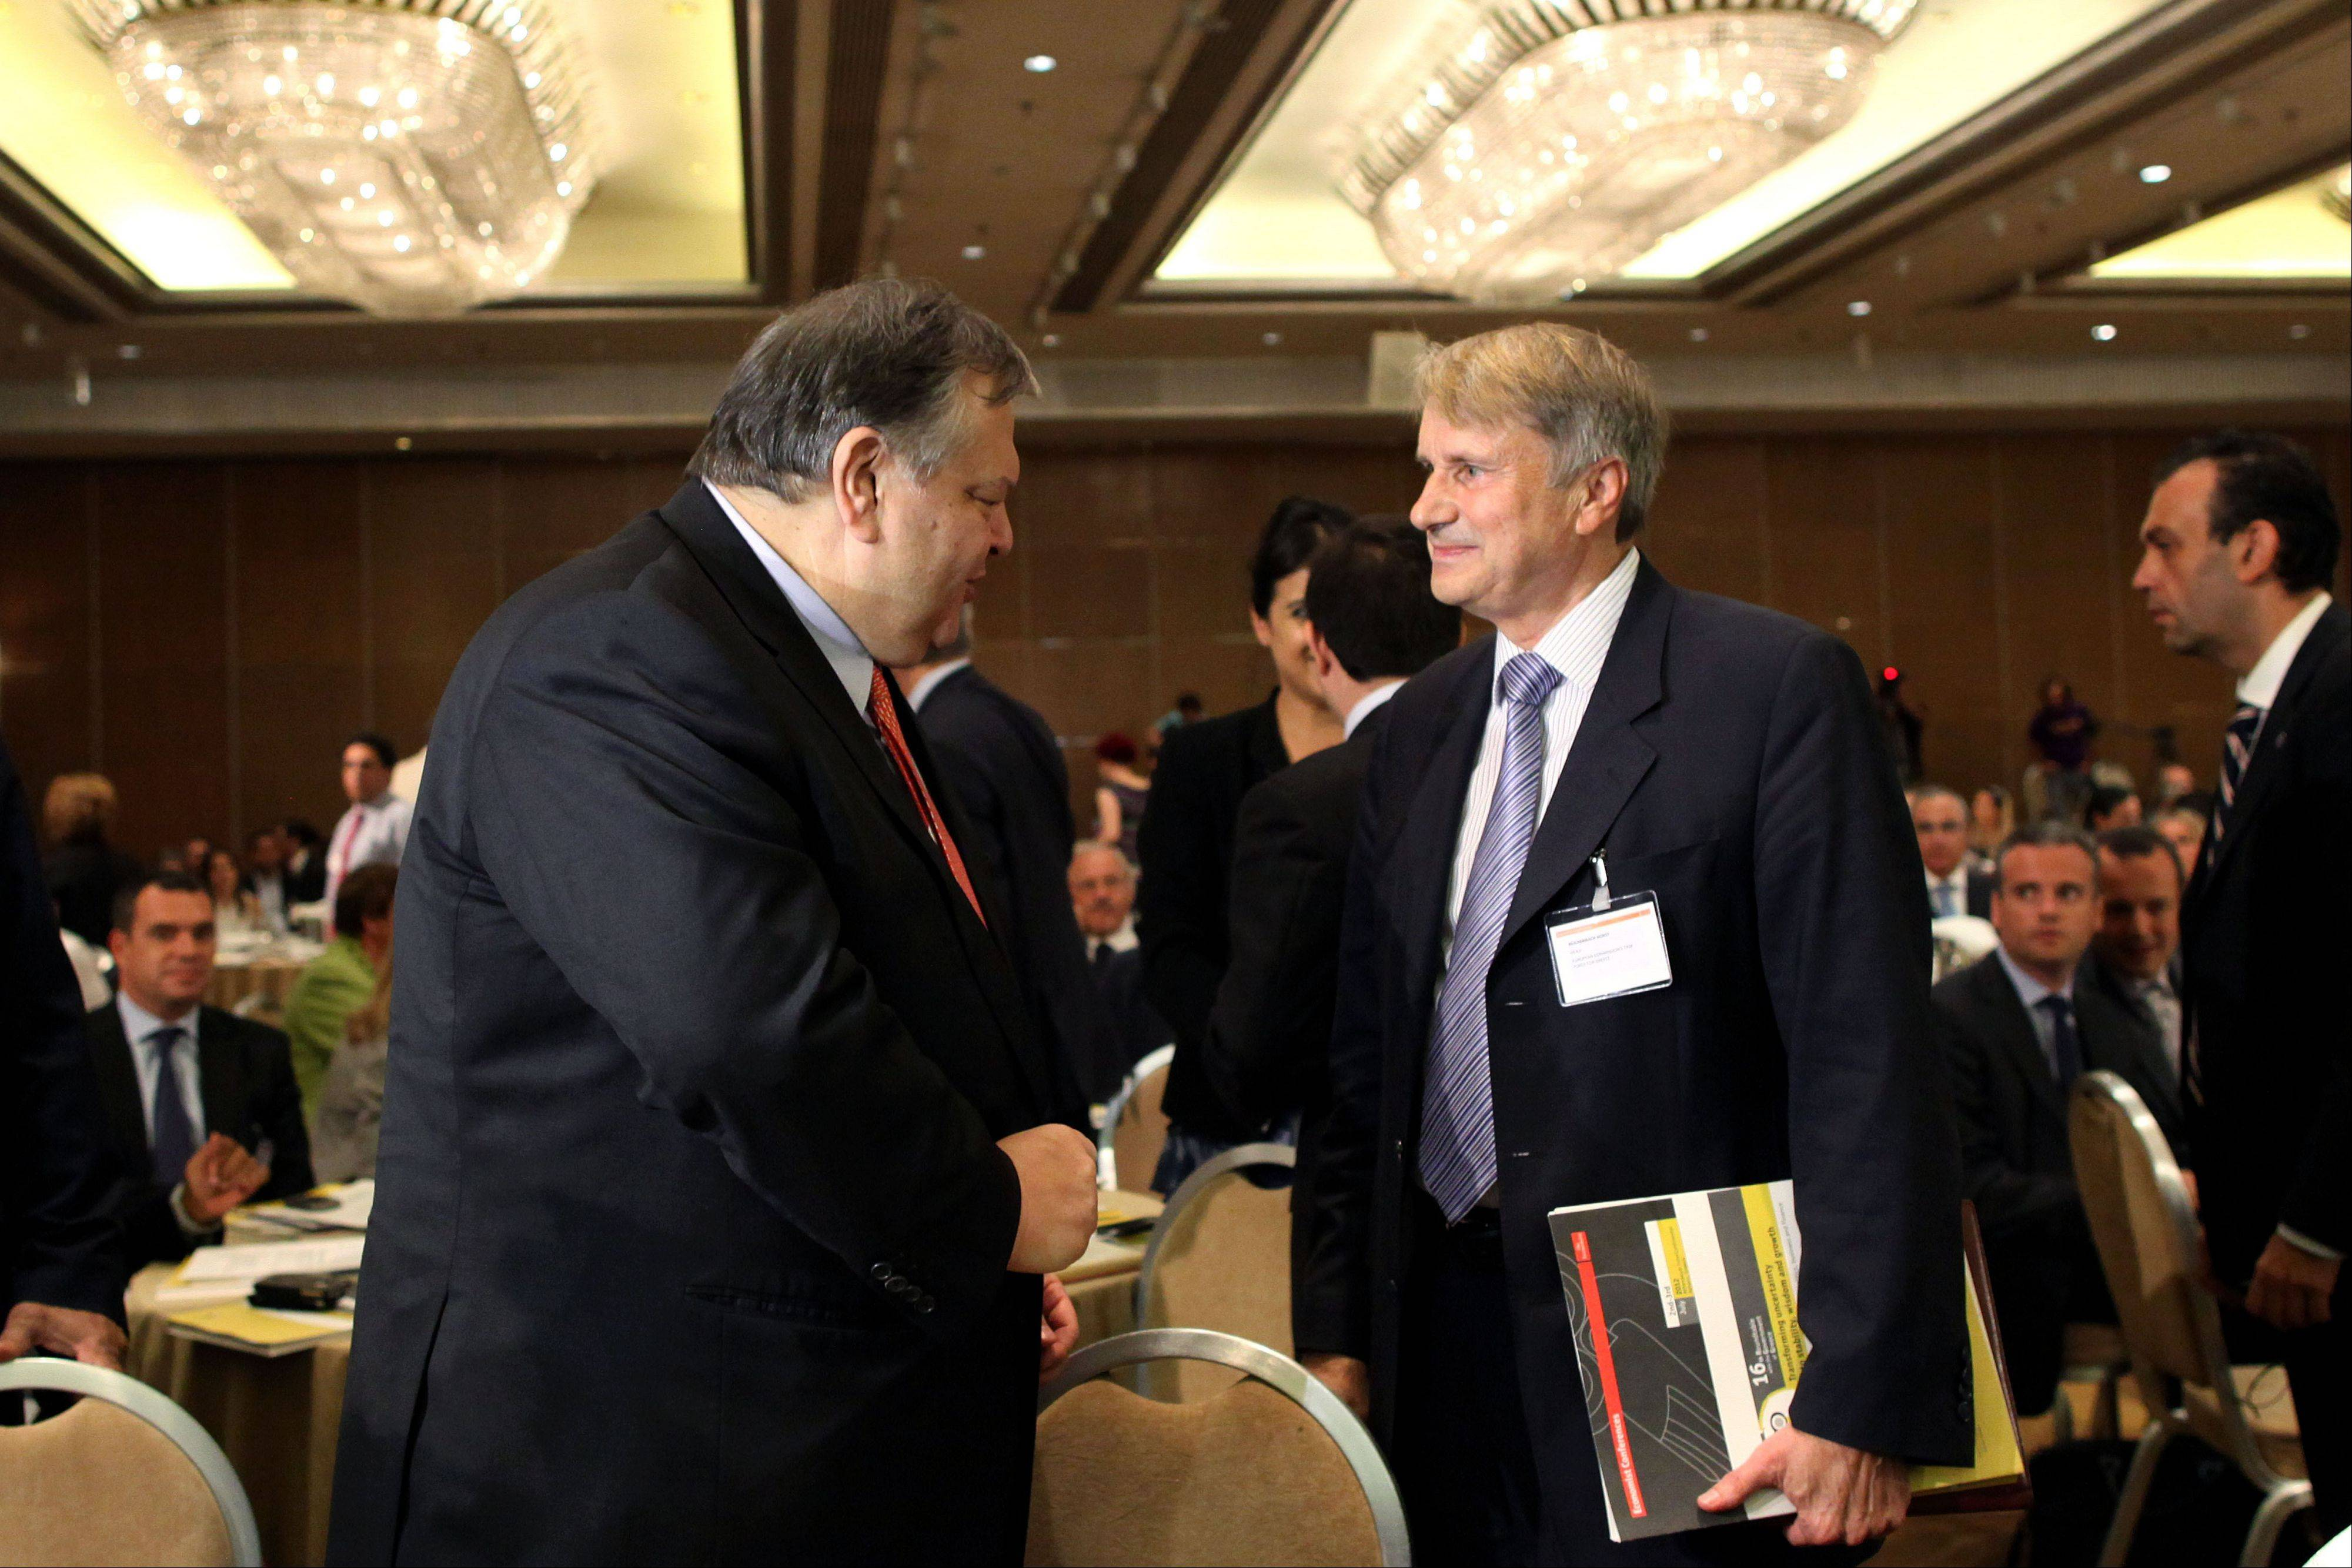 Horst Reichenbach head of the Task Force of the European Commission in charge of providing technical assistance to Greece, right, talks with Leader of the Socialist PASOK party Evangelos Venizelos during an Economist conference in Athens, on Tuesday.